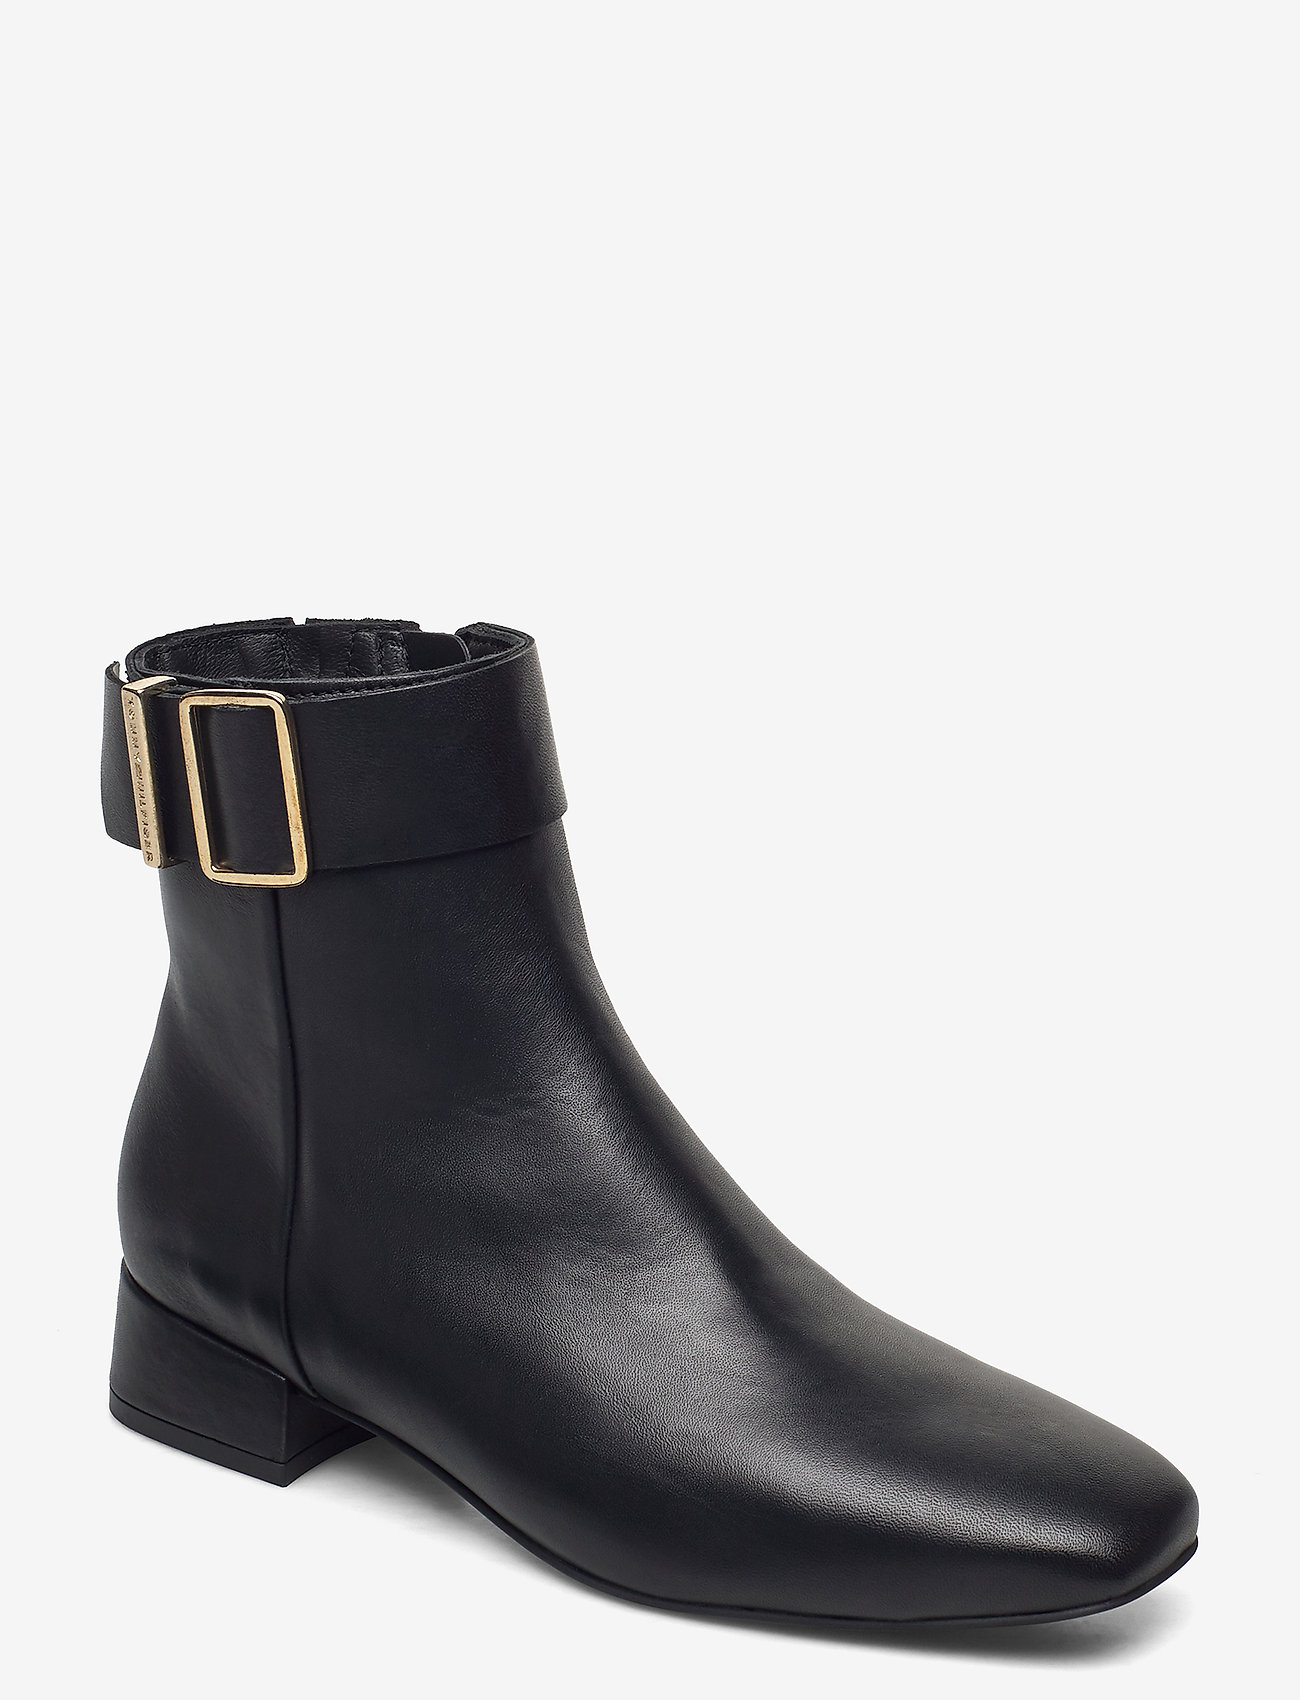 Tommy Hilfiger - LEATHER SQUARE TOE MID HEEL BOOT - flat ankle boots - black - 0